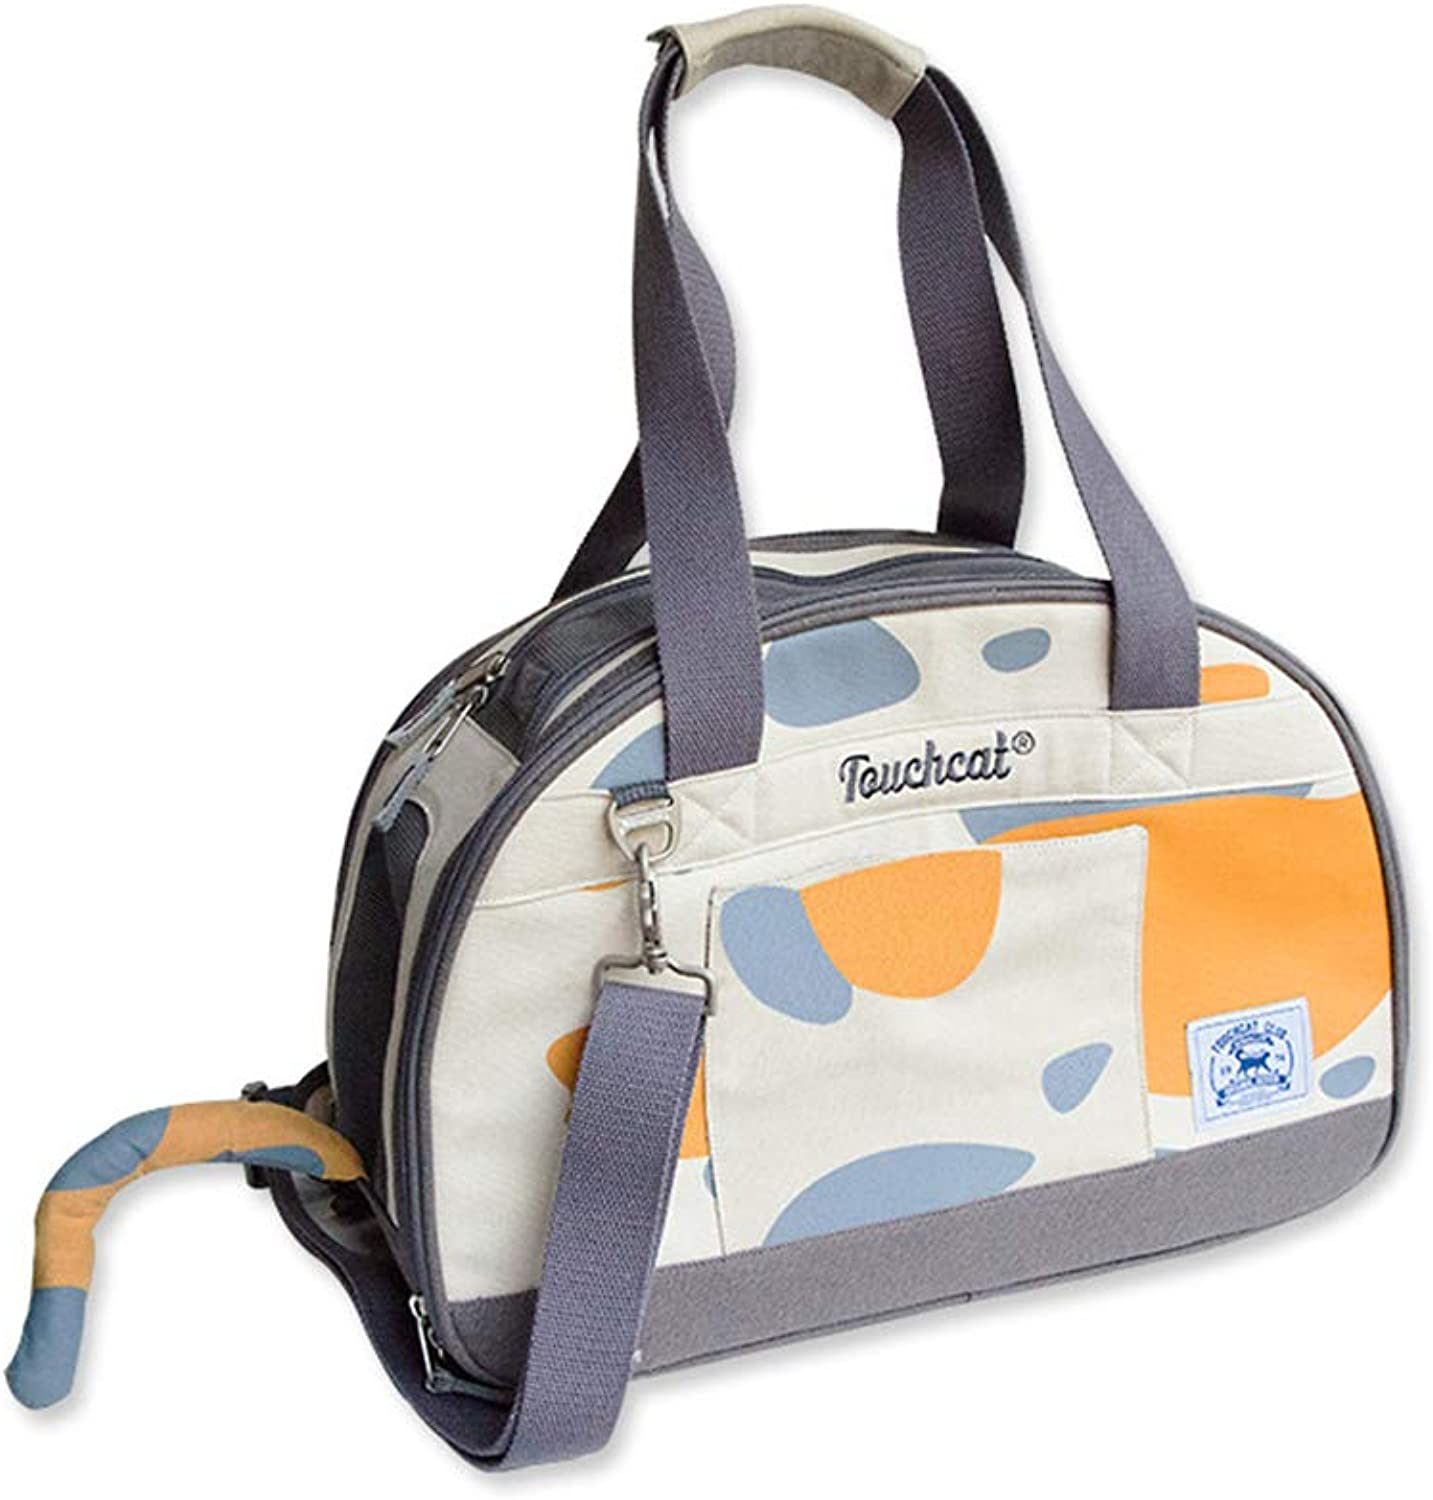 Pets Carrier Shoulder Bags for Cats and Dogs Ventilated, Folding design Designed for Travel, Hiking&Outdoor Use